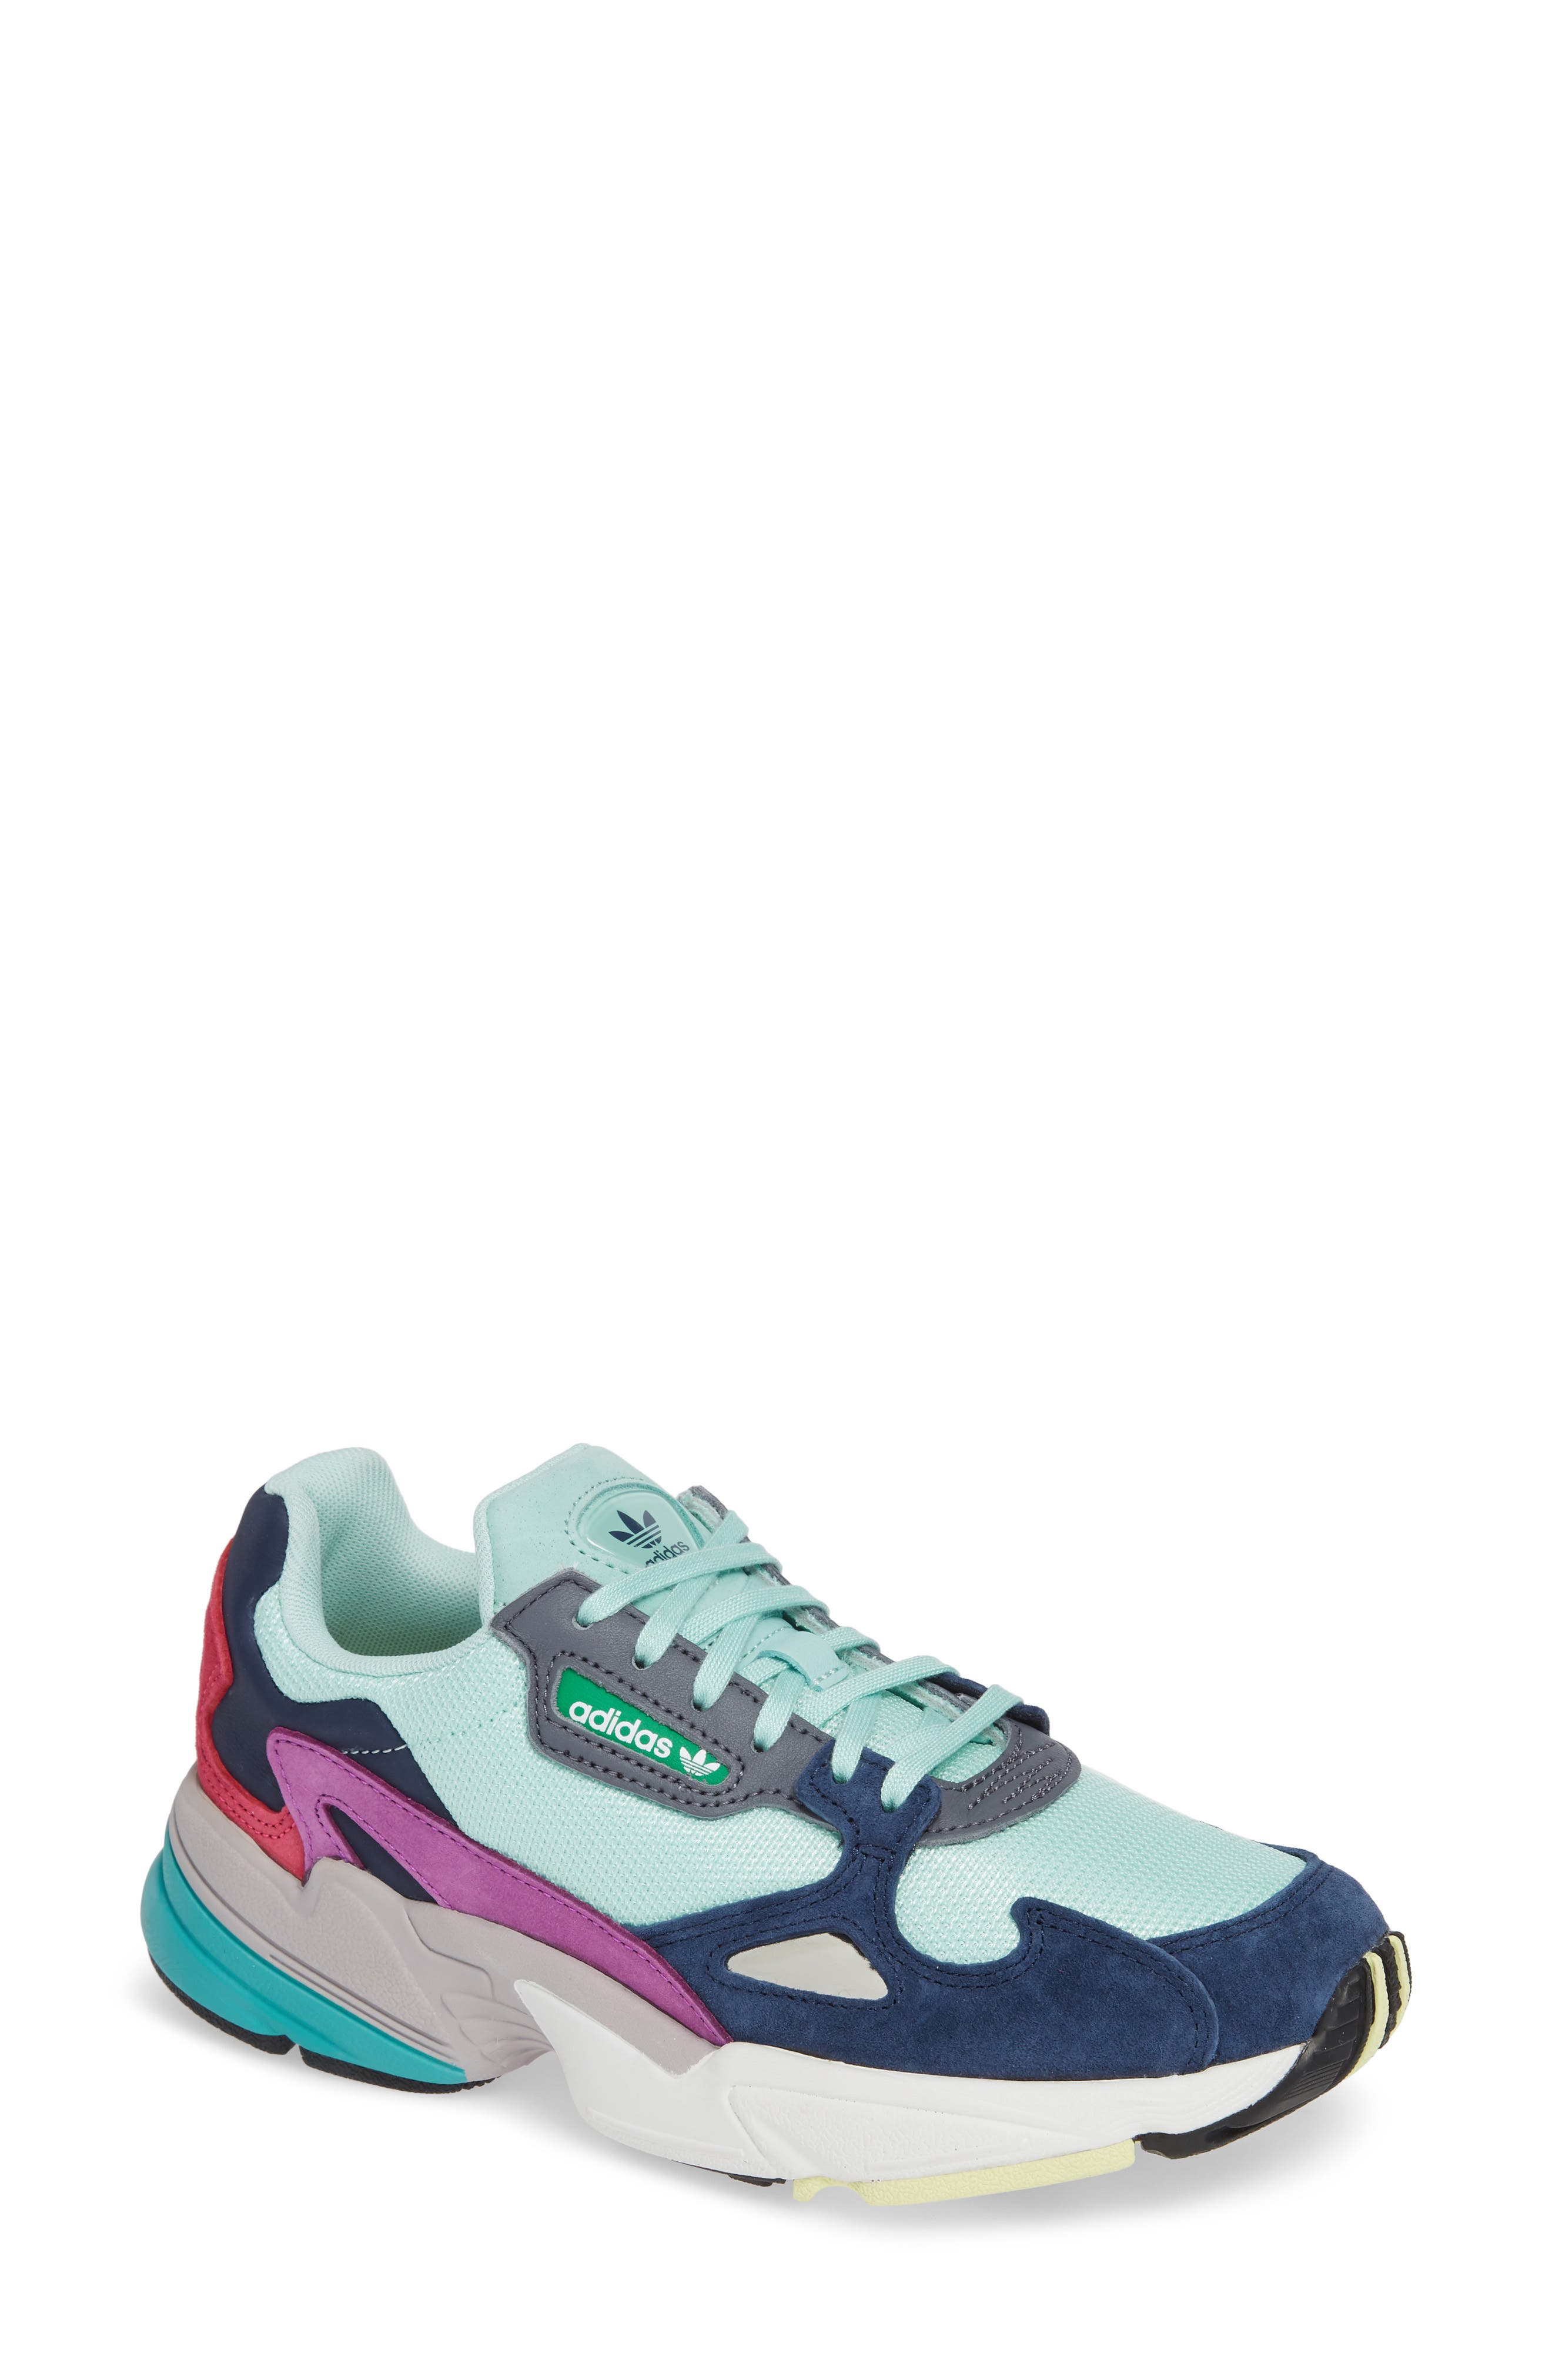 Falcon Sneaker,                             Main thumbnail 1, color,                             CLEAR MINT/ CLEAR MINT/ NAVY